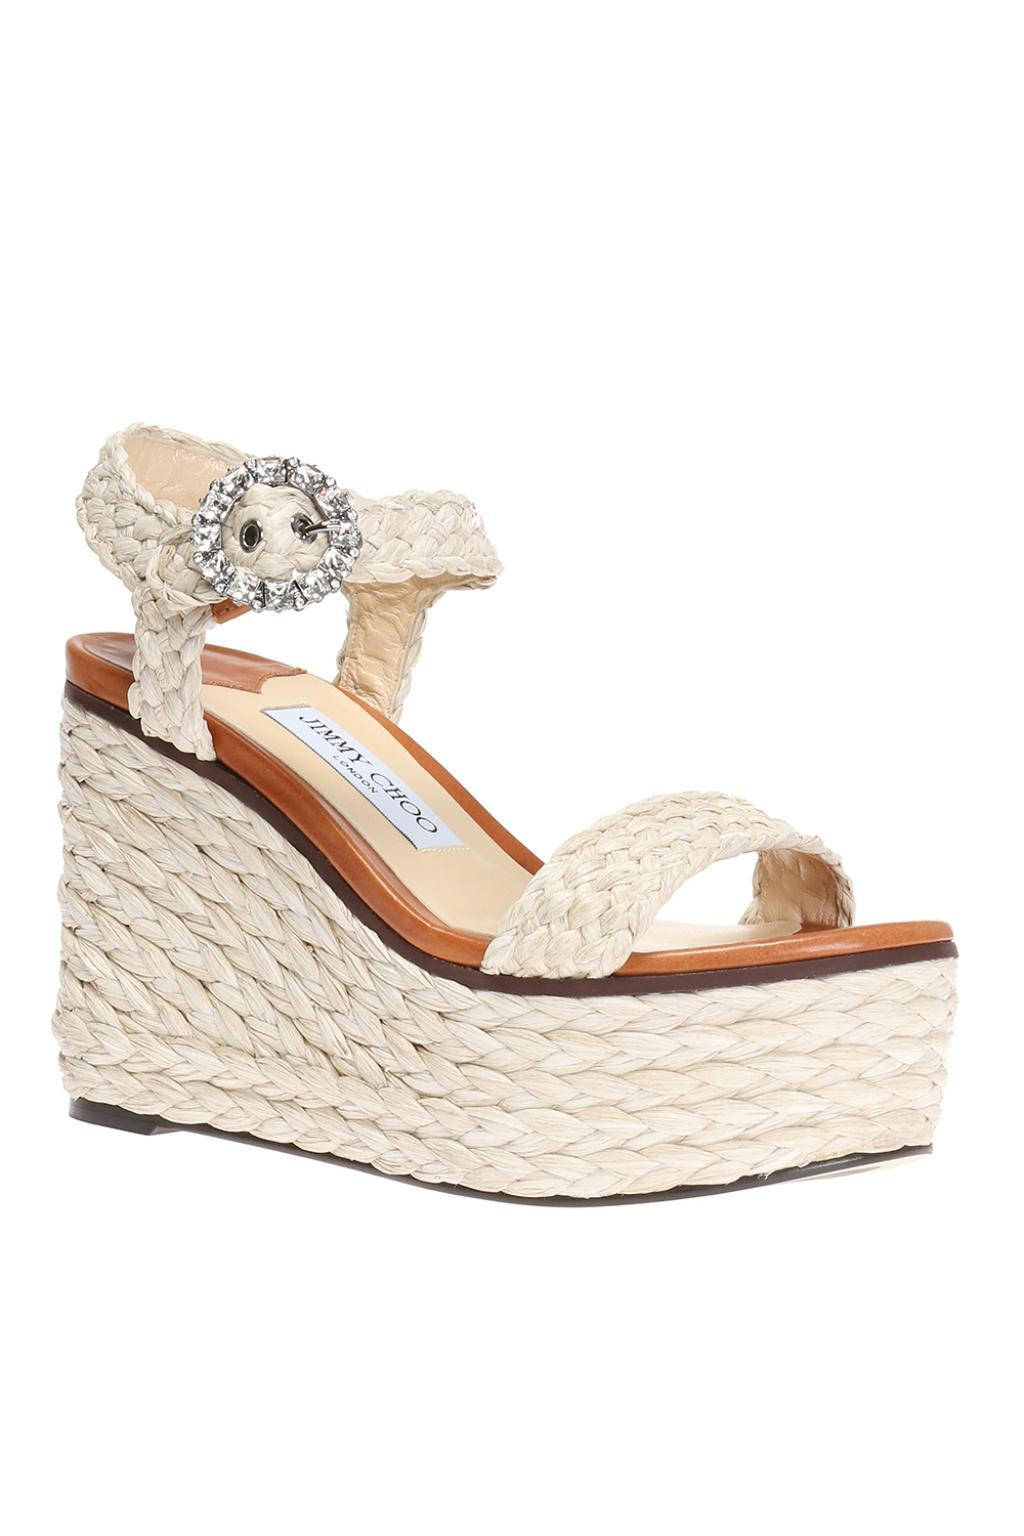 30eb93dfc6a Lyst - Jimmy Choo  nylah  Wedge Sandals in White